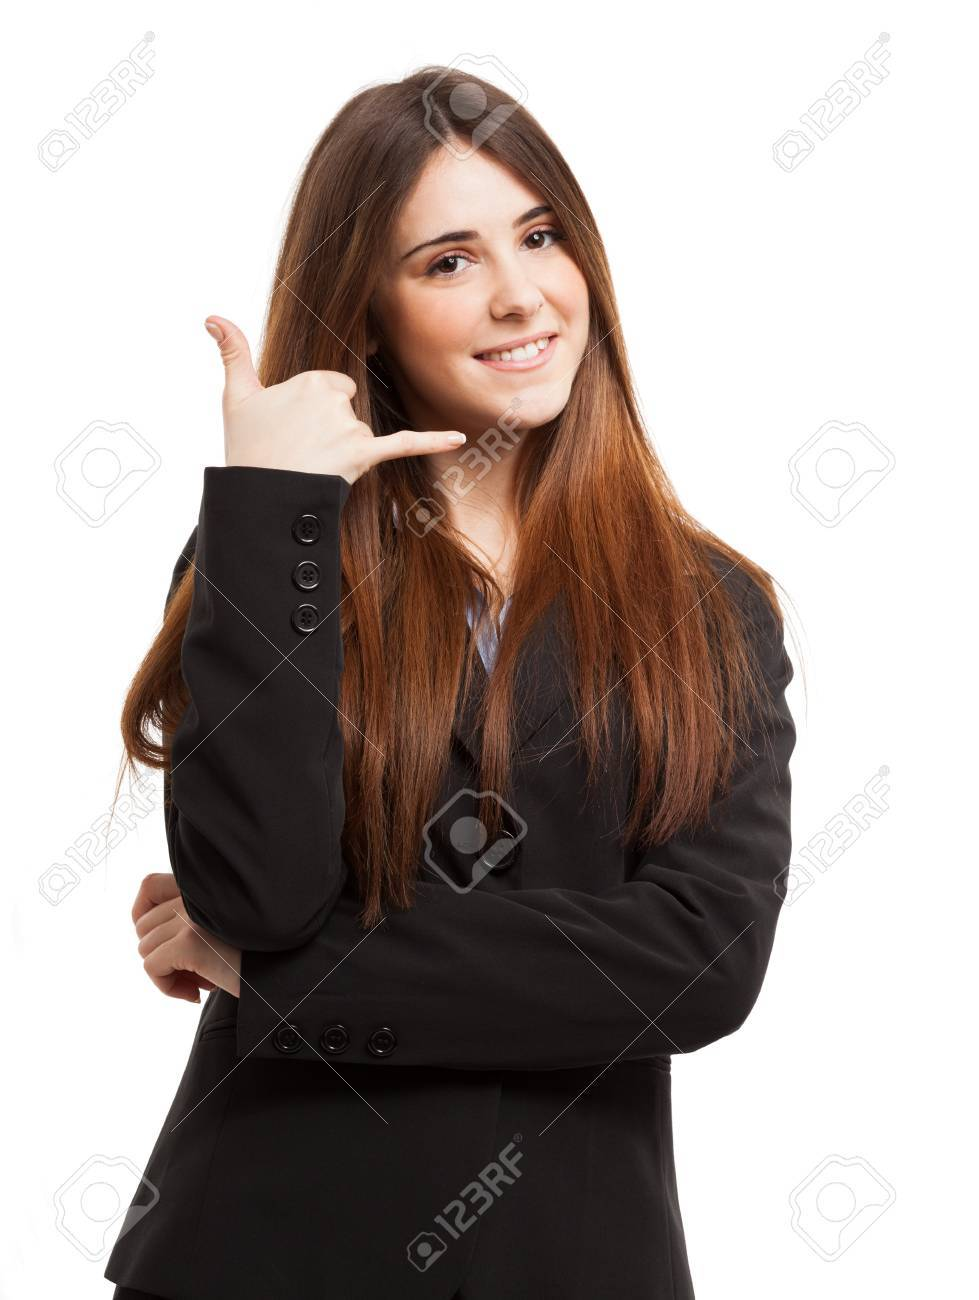 Friendly woman miming a phone call using the hand. Isolated on white Stock Photo - 19567793